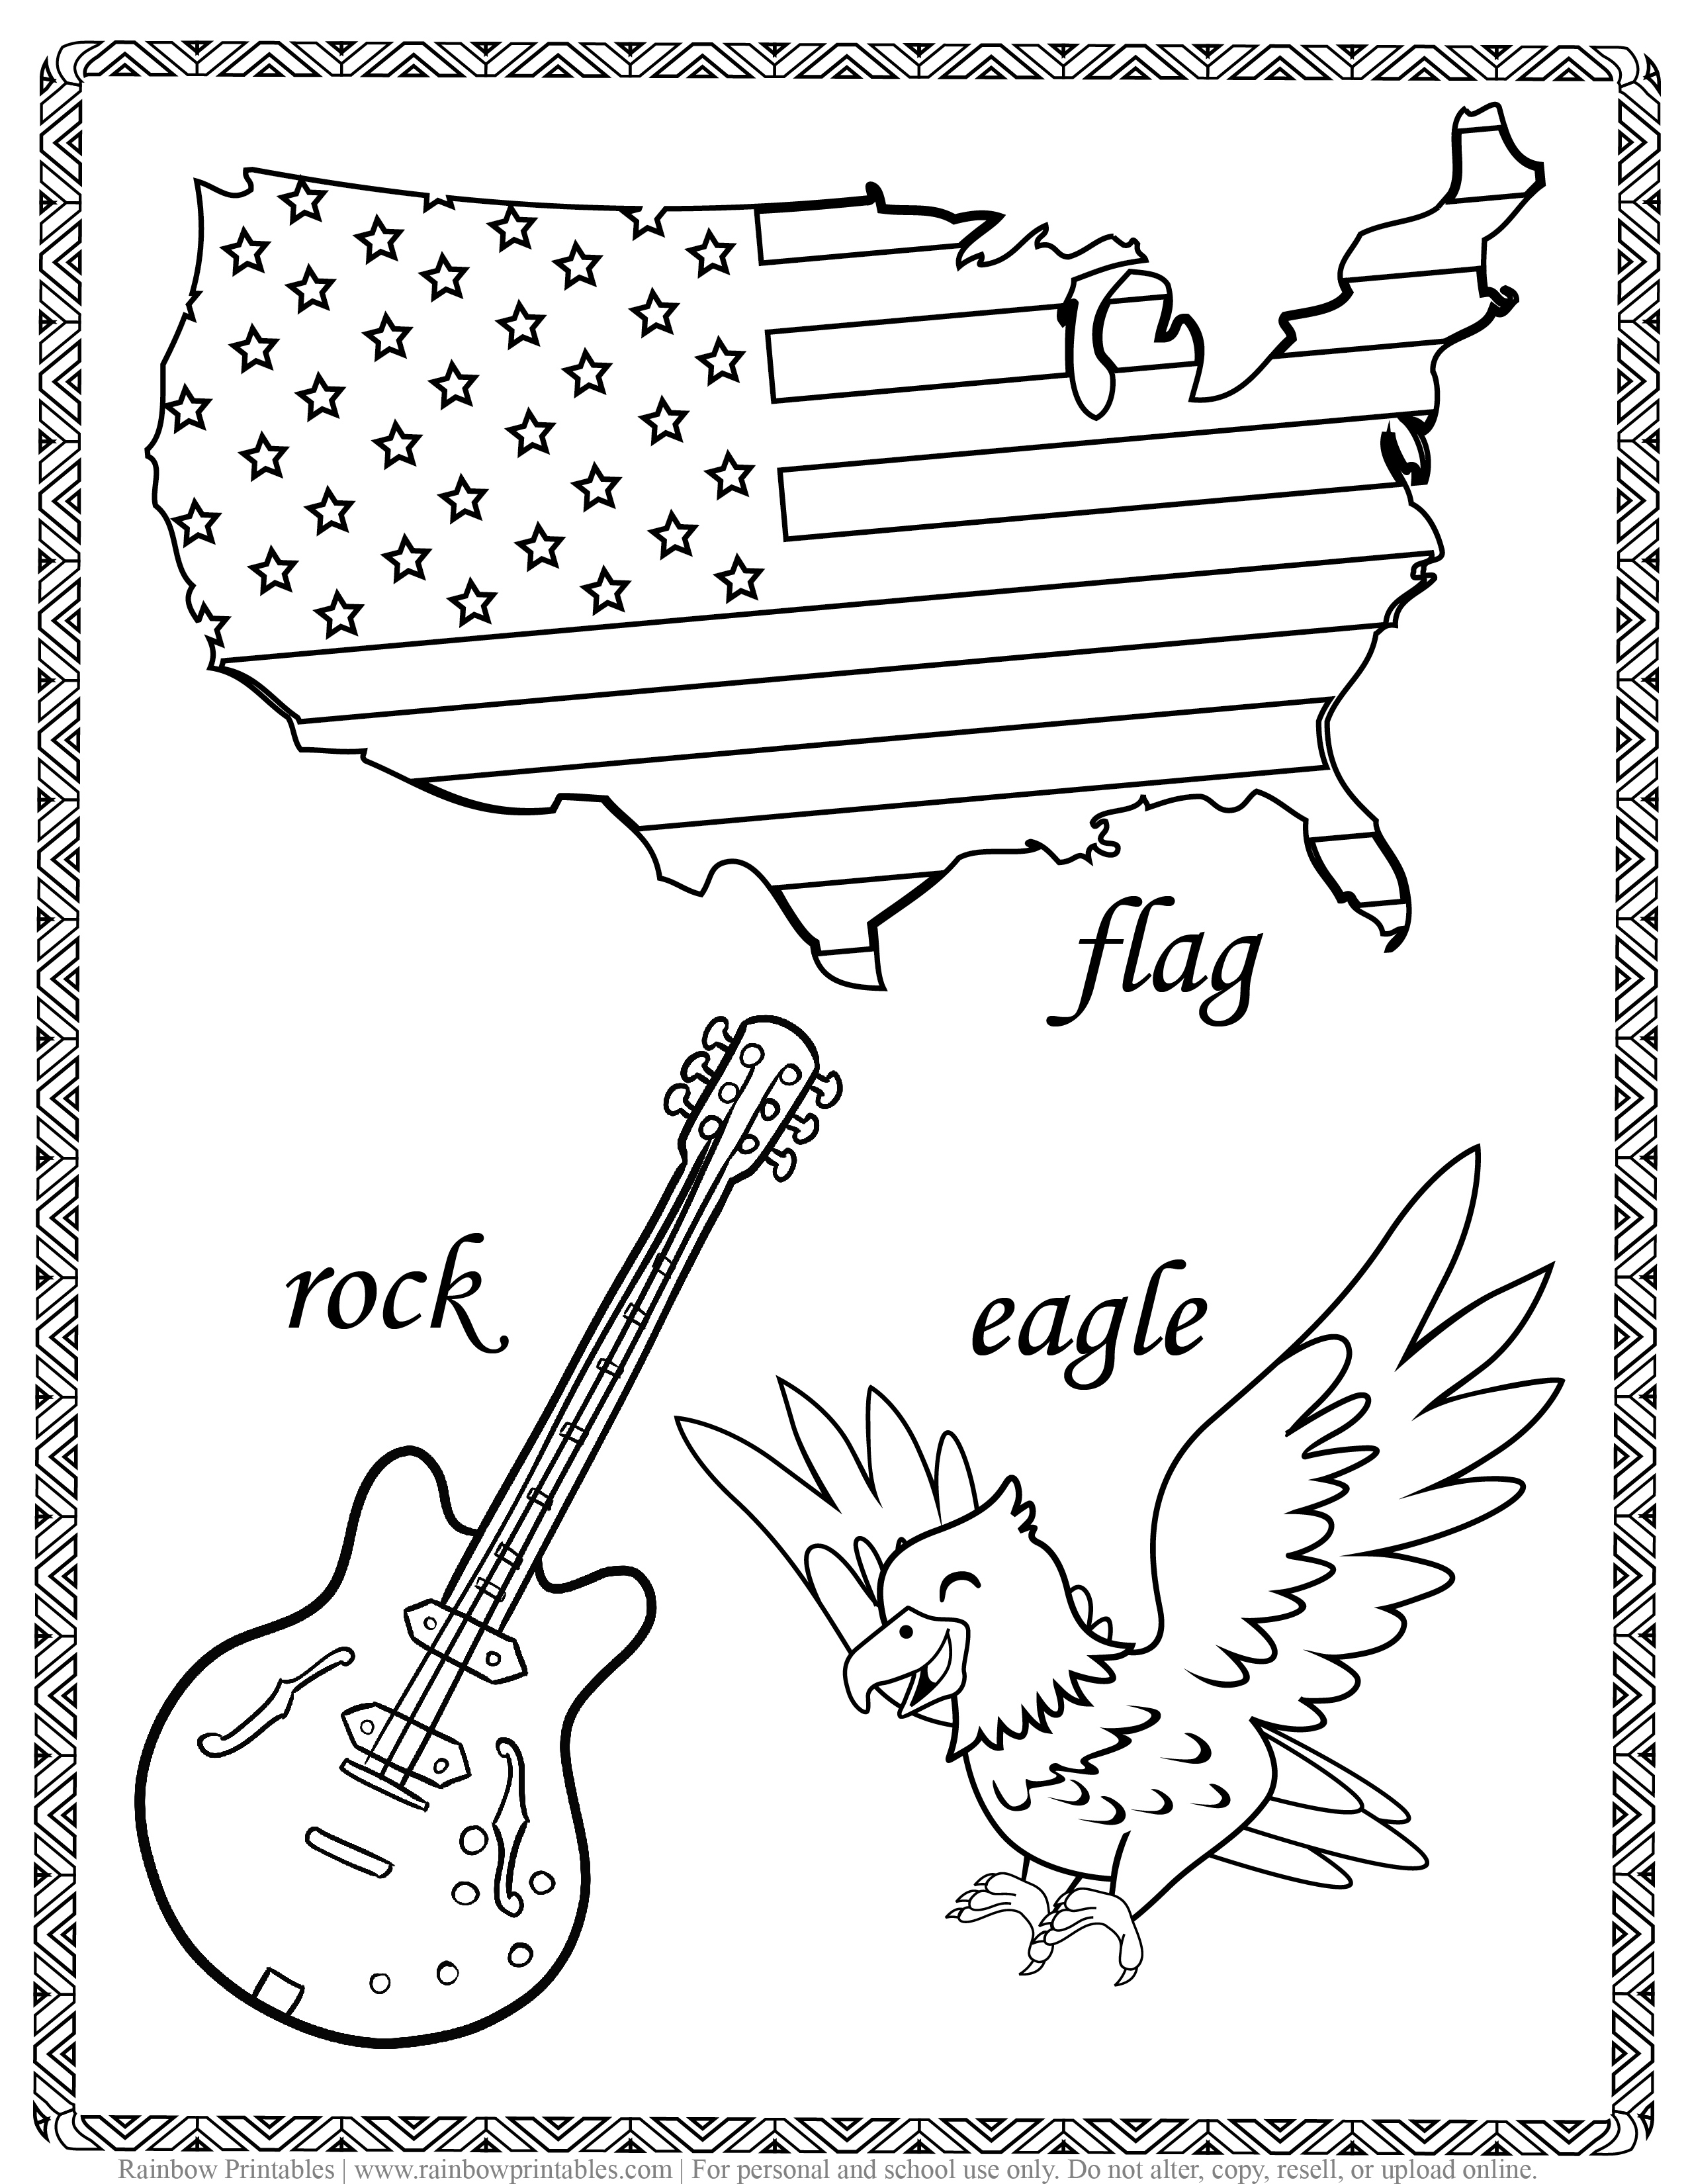 ROCK FLAG and EAGLE Sunny's Charlie Joke, America Patriotic July 4th Independence Day Printables for Kids, Toddlers, Coloring Pages, Activity for Preschool-12